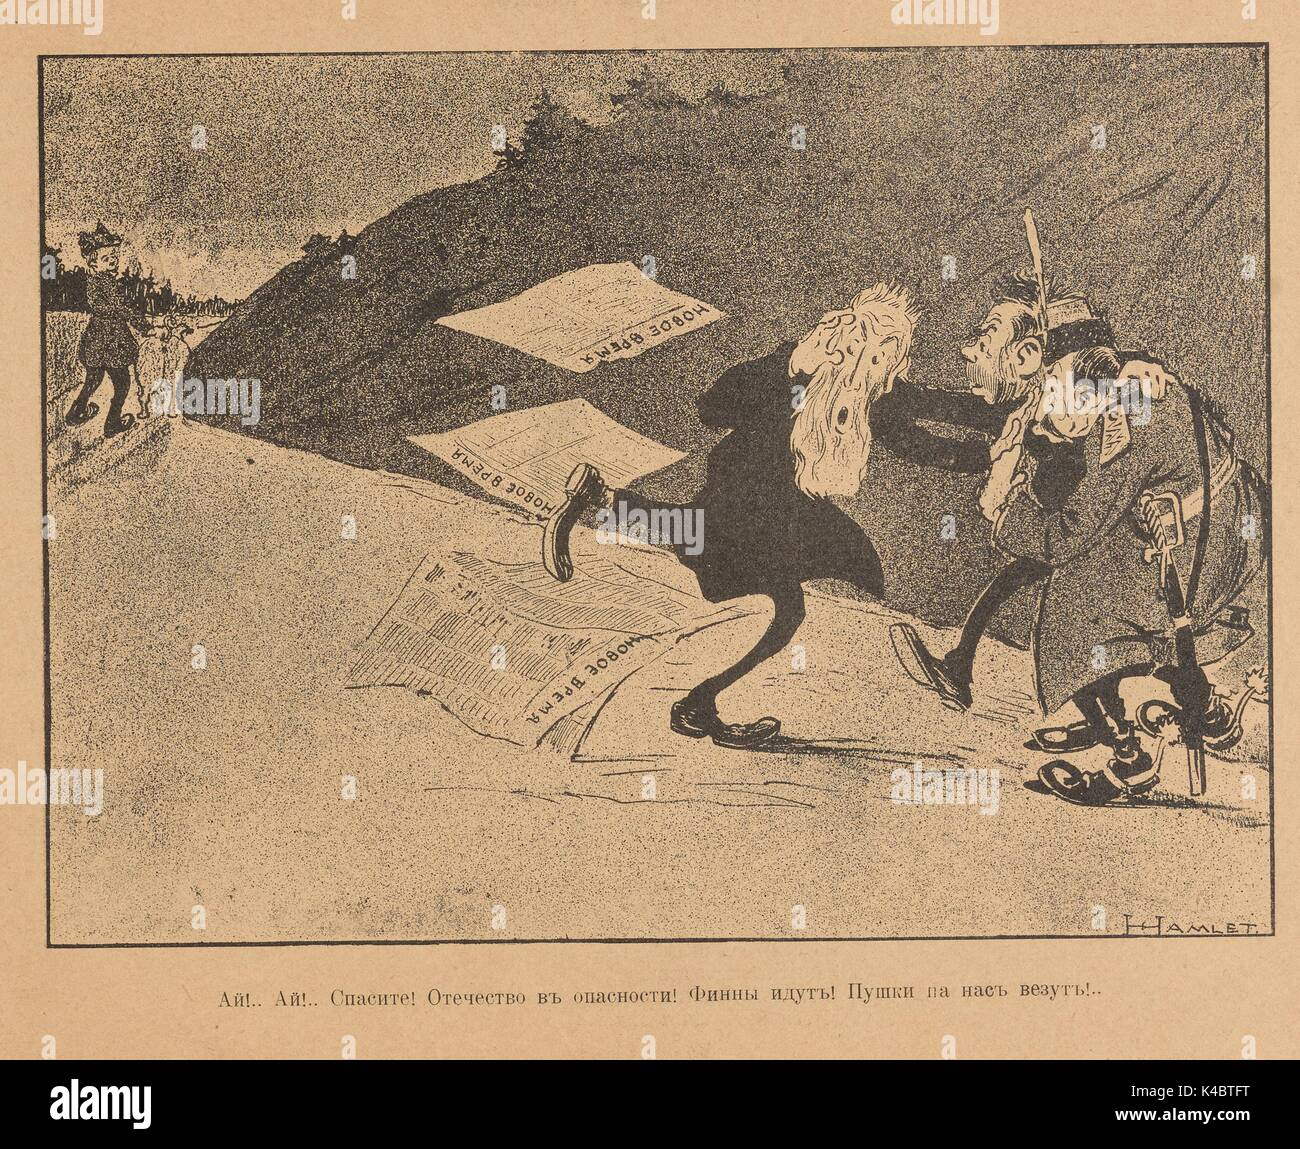 Cartoon of an old man running, panicked, towards two soldiers, screaming 'Help, the motherland is in jeopardy, Finns are coming and aiming their cannons at us', with a copy of the newspaper Novoye Vremia (New Times) on the ground, from the Russian satirical journal Bich, 1906. The cartoon mocks the Novoye Vremia newspaper, which was seen by Russian liberals at the time as serving the interests of the government. - Stock Image